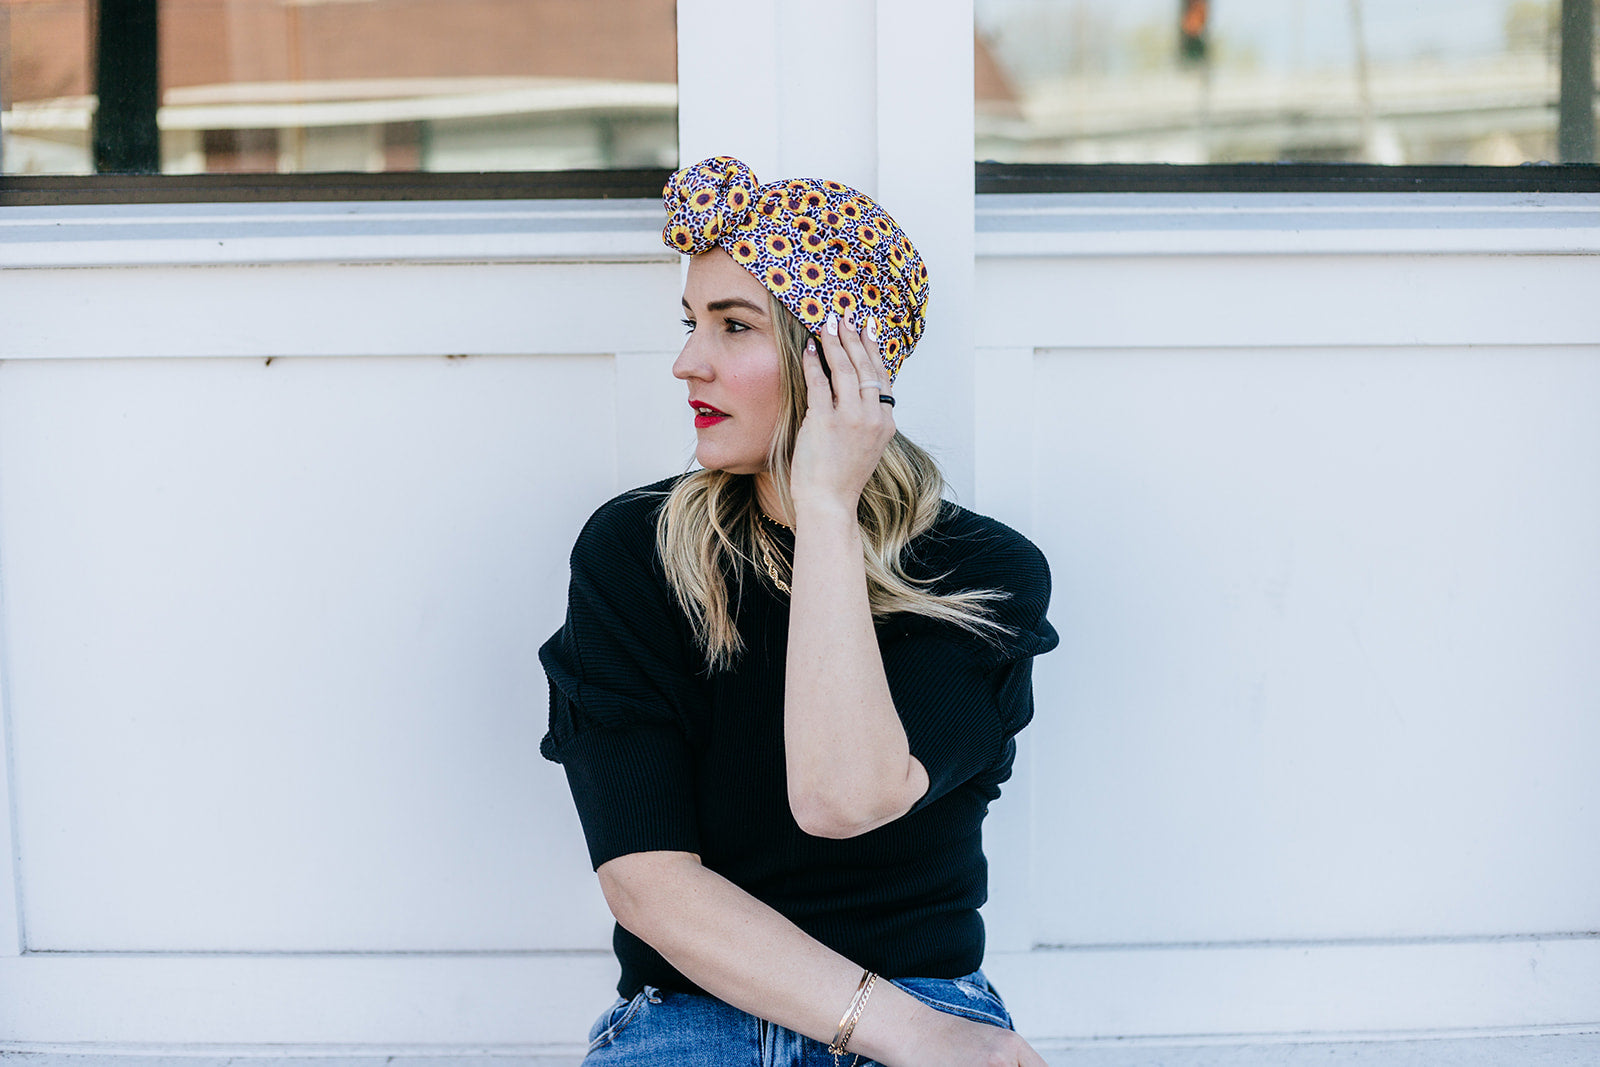 The Desirae Turban